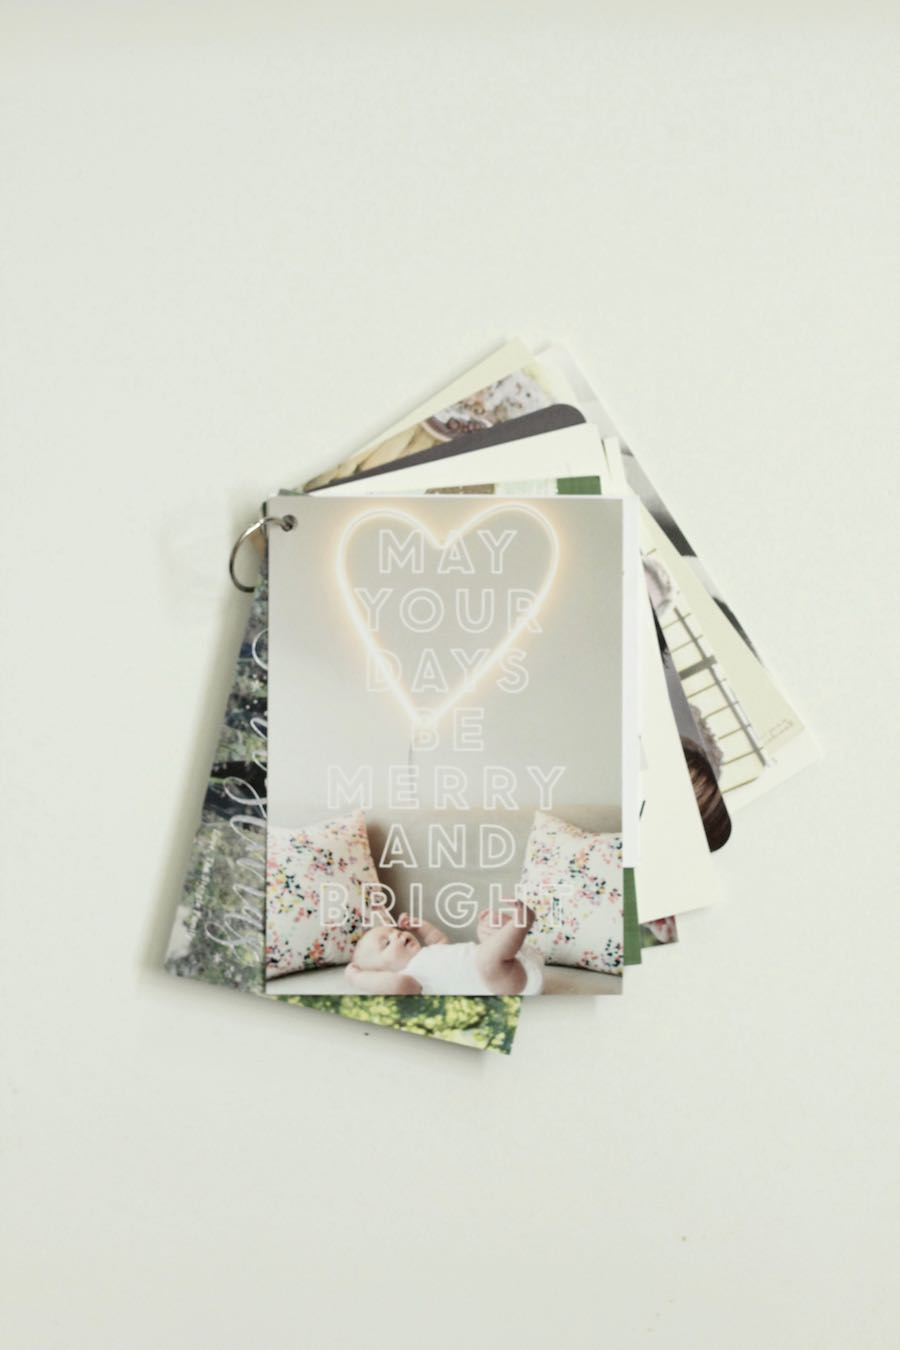 Upcycle/Repurpose Your Holiday Cards